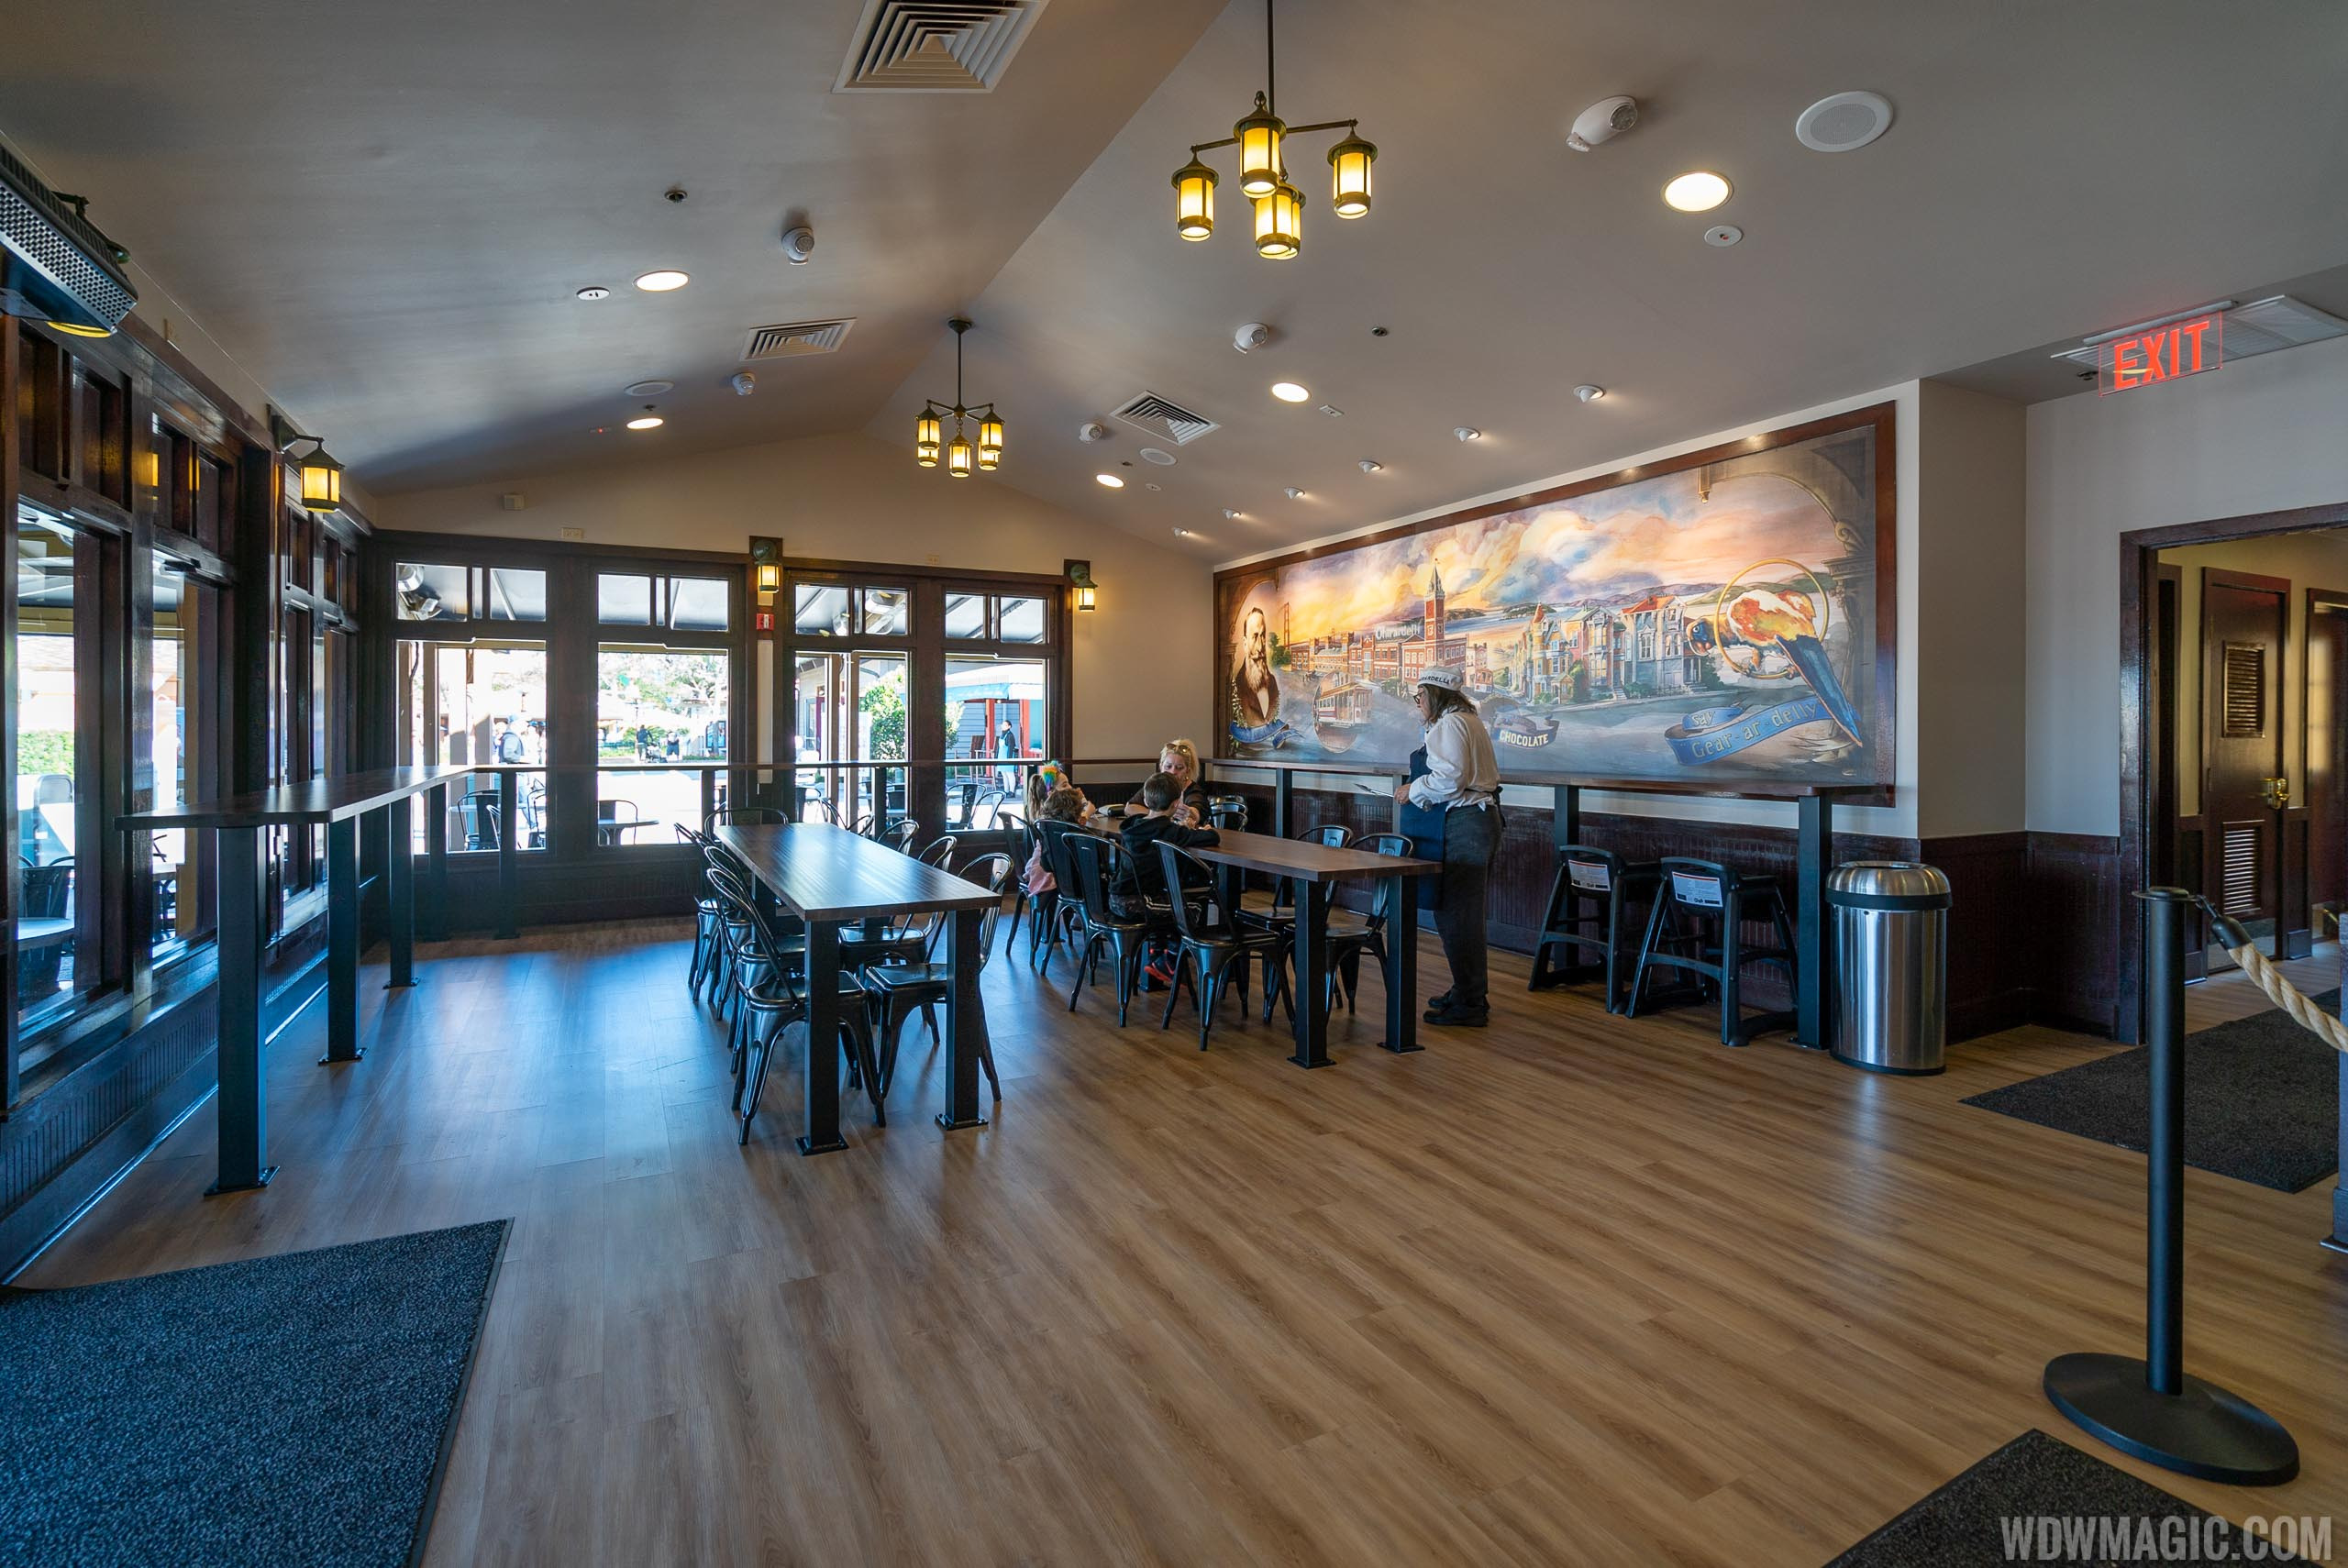 Refurbished Ghirardelli Soda Fountain February 2020